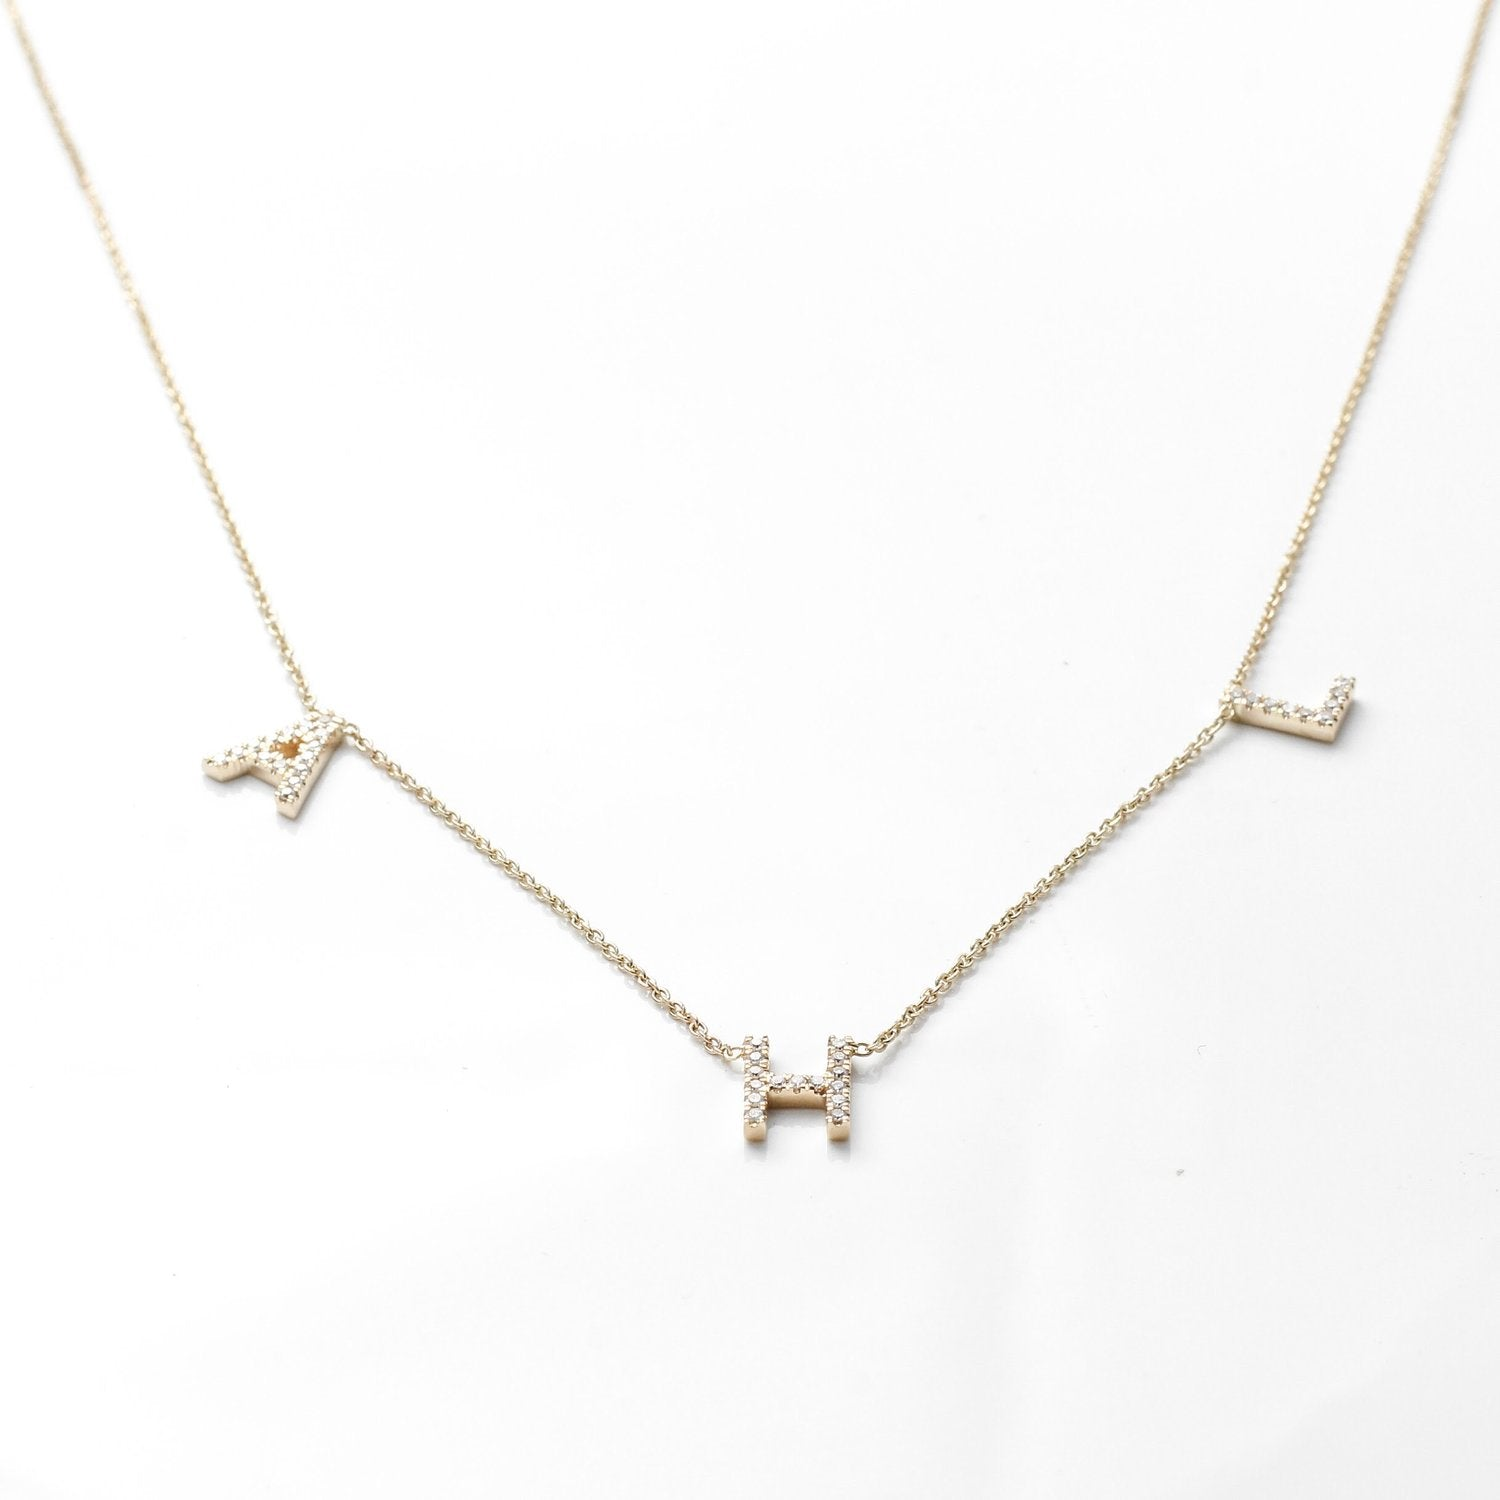 Custom Initial Necklace in 14k Gold